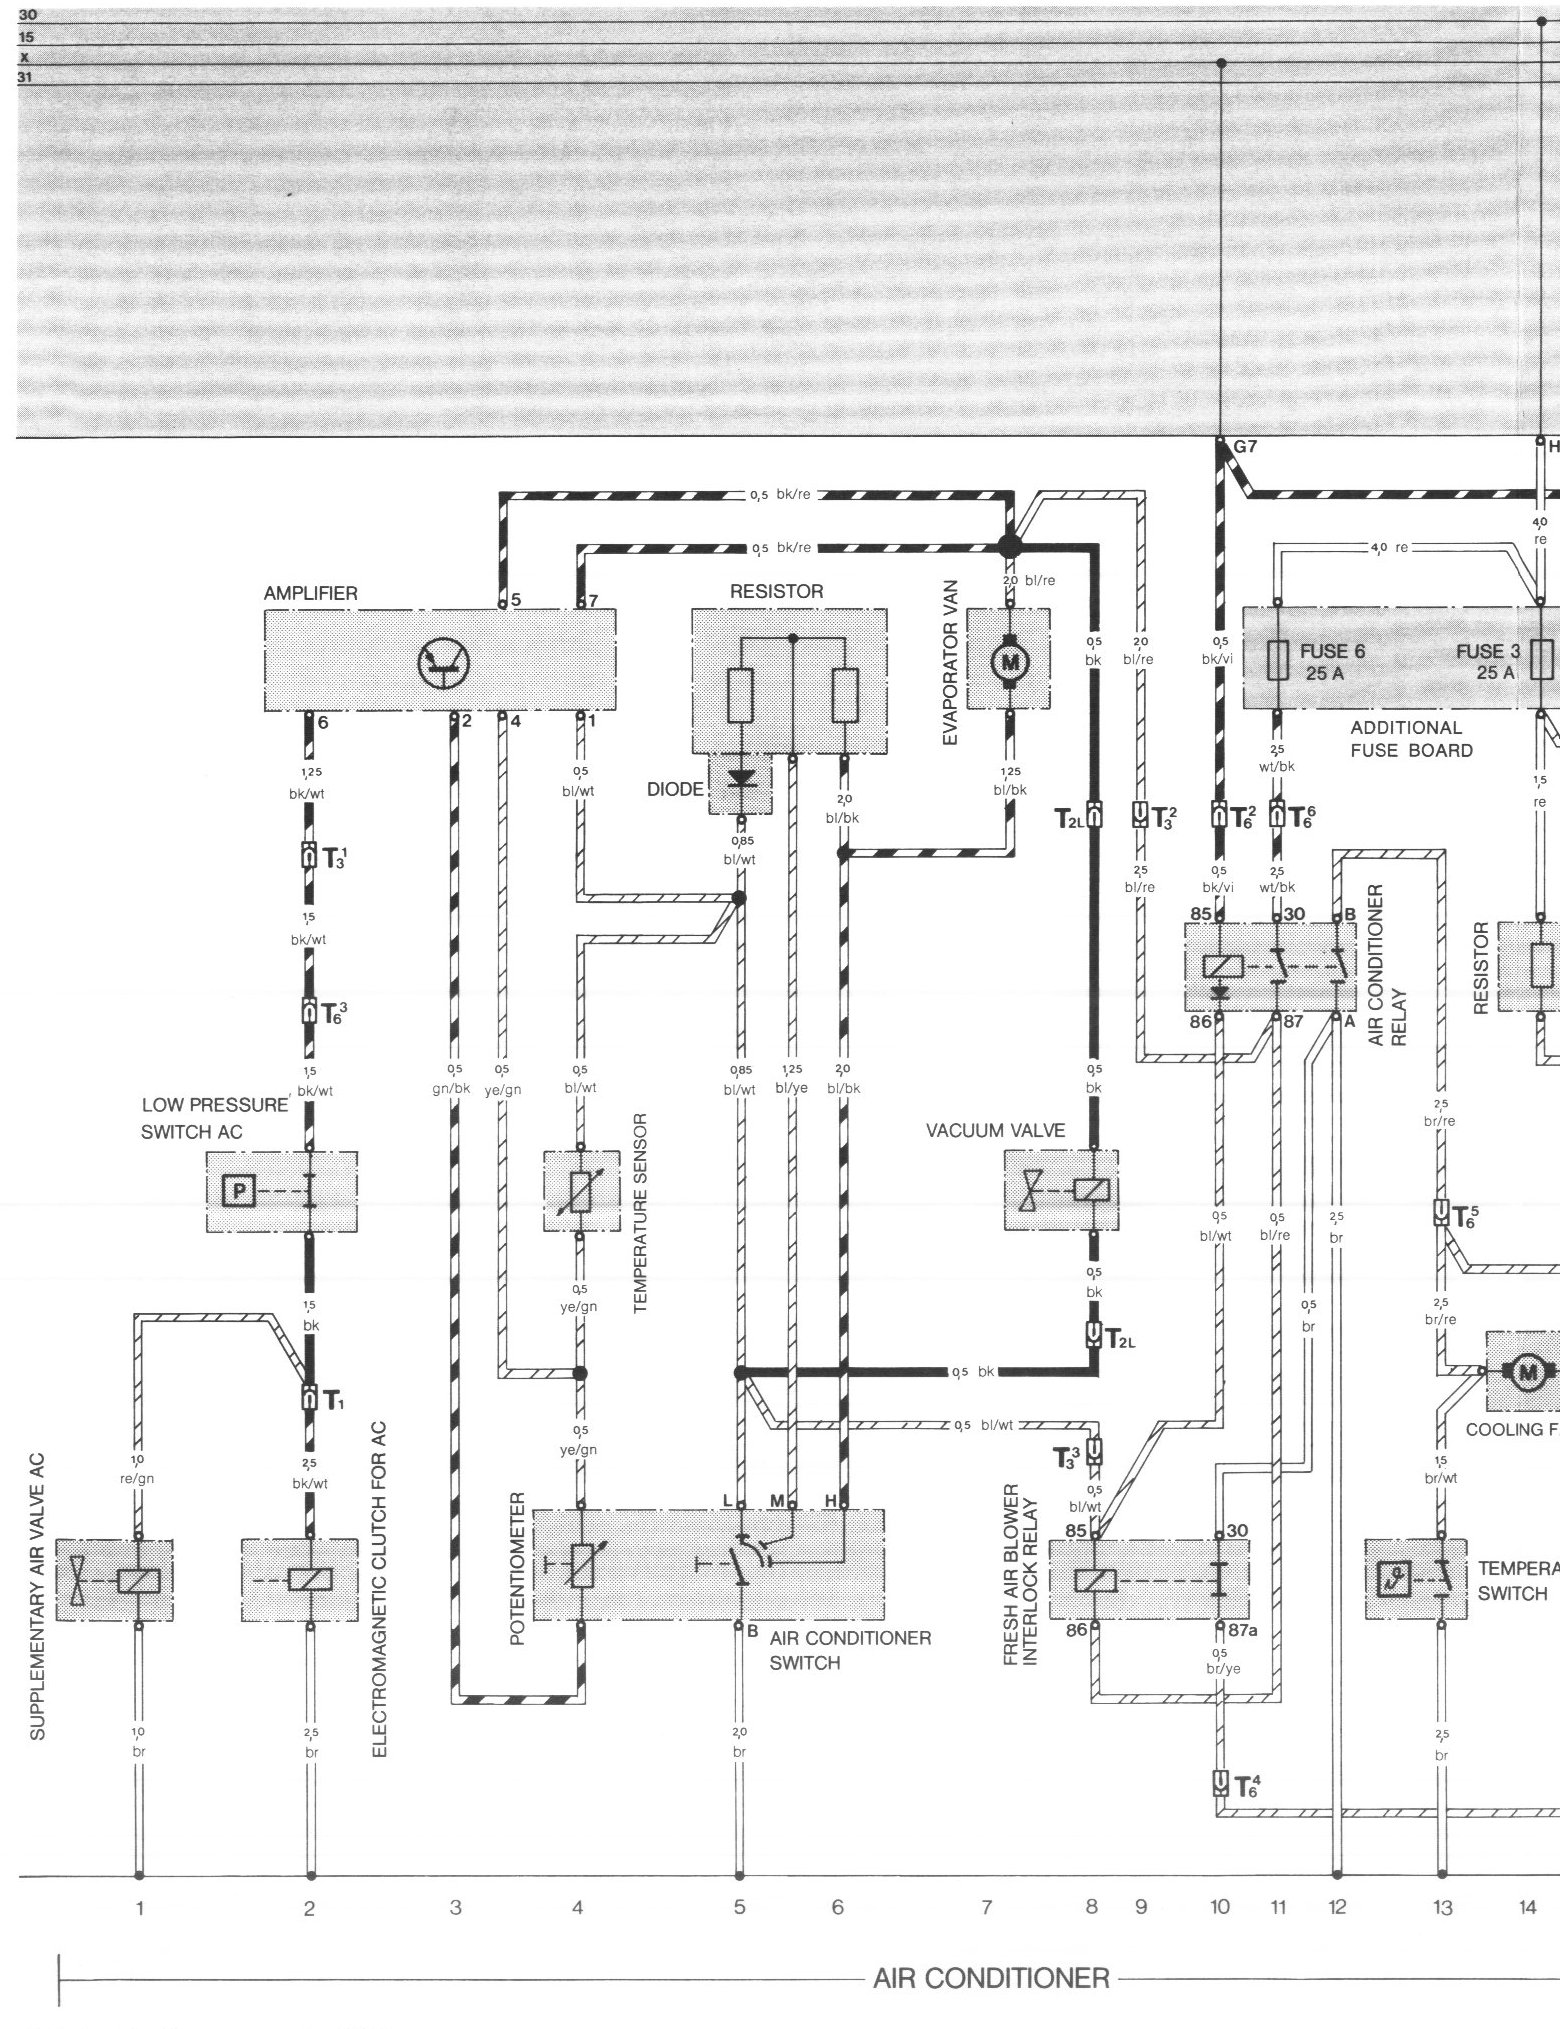 pelican parts porsche 924 944 electrical diagrams rh pelicanparts com porsche 944 wiring diagram pdf porsche 944 fuel pump wiring diagram